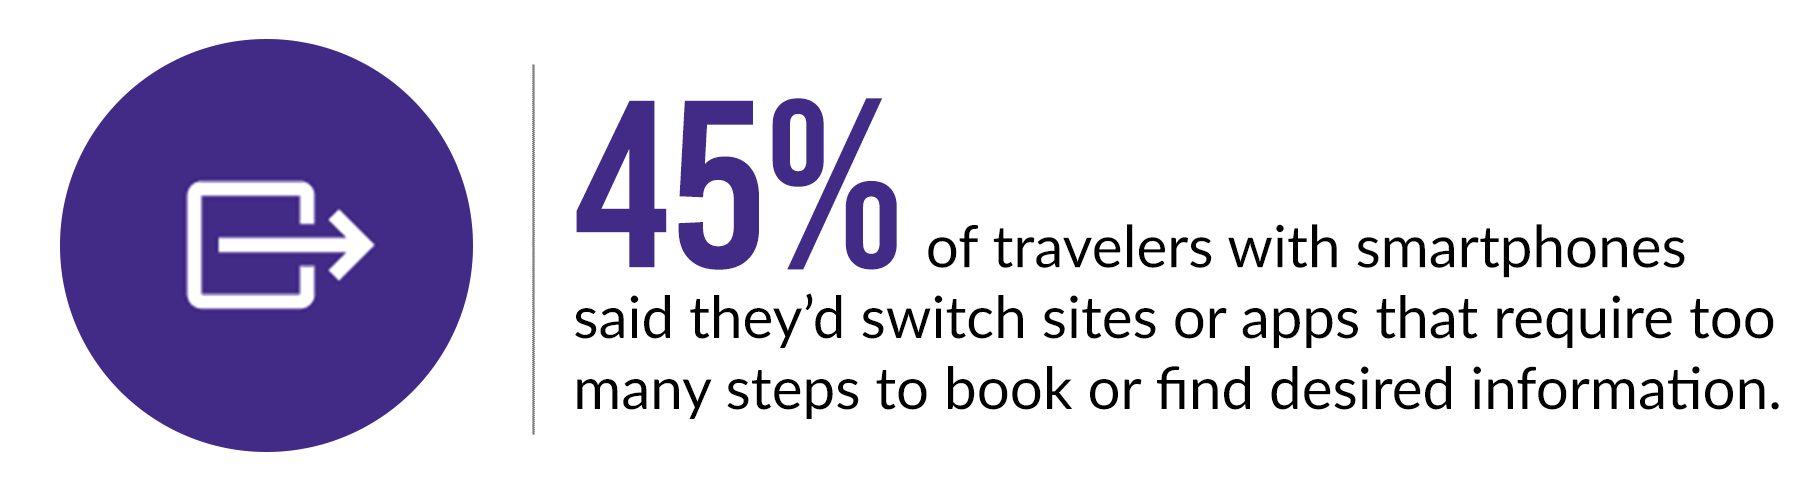 45 percent of travelers switch site or app that is too complicated